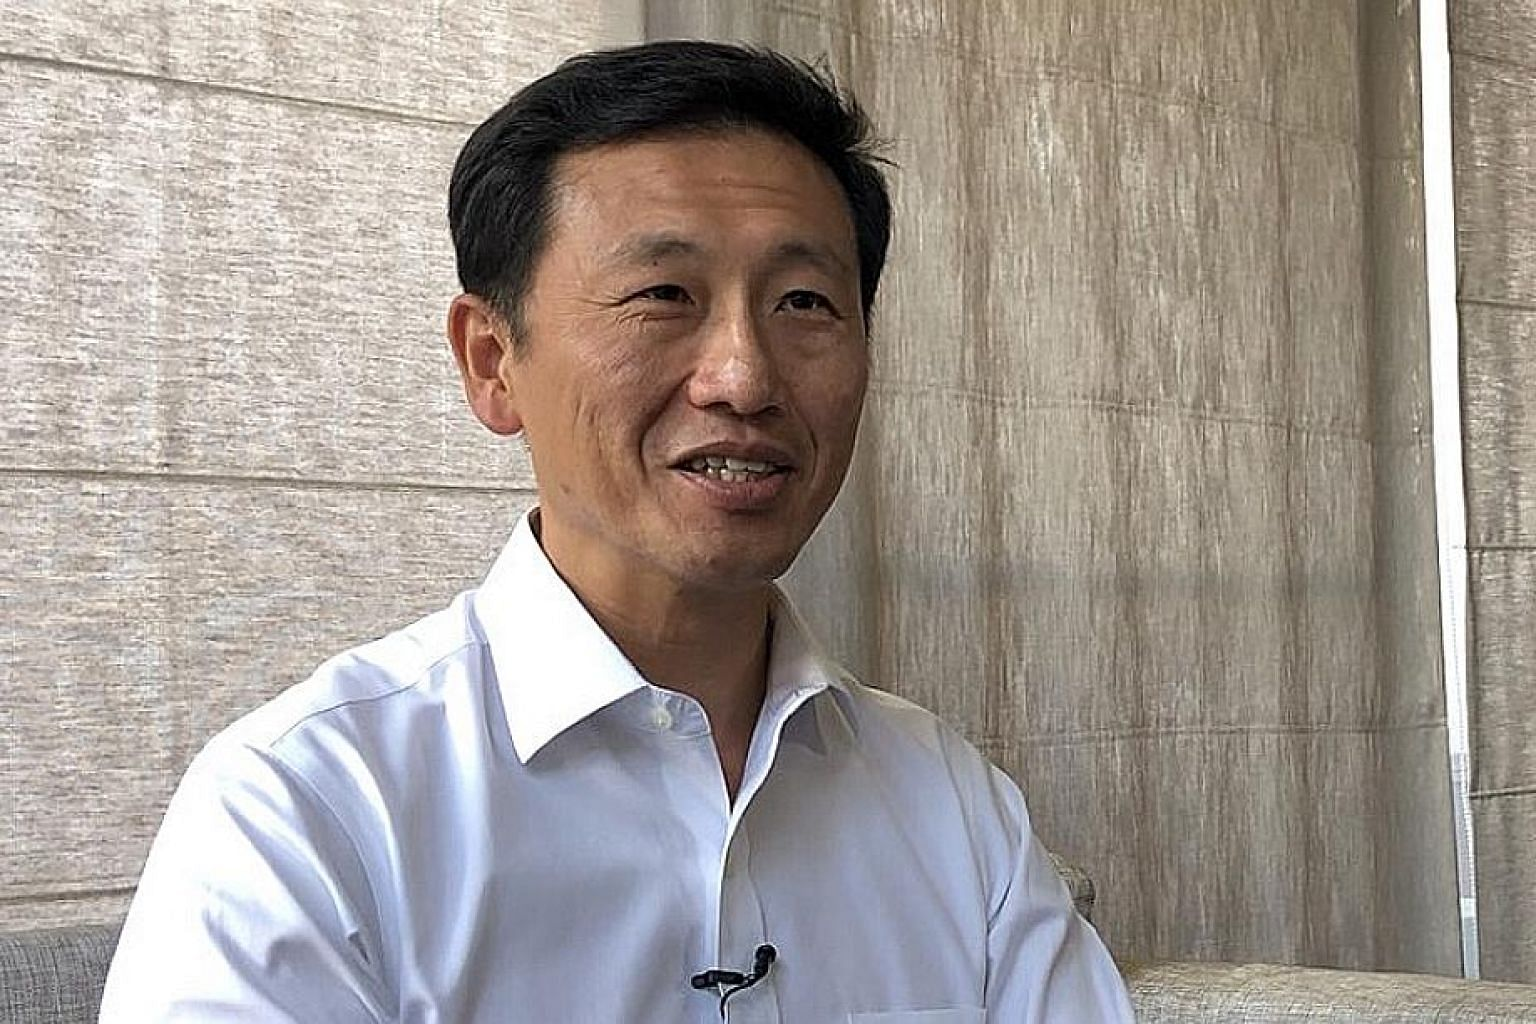 Education Minister Ong Ye Kung said workers need to be adaptable and open to the different ways that work is being done.